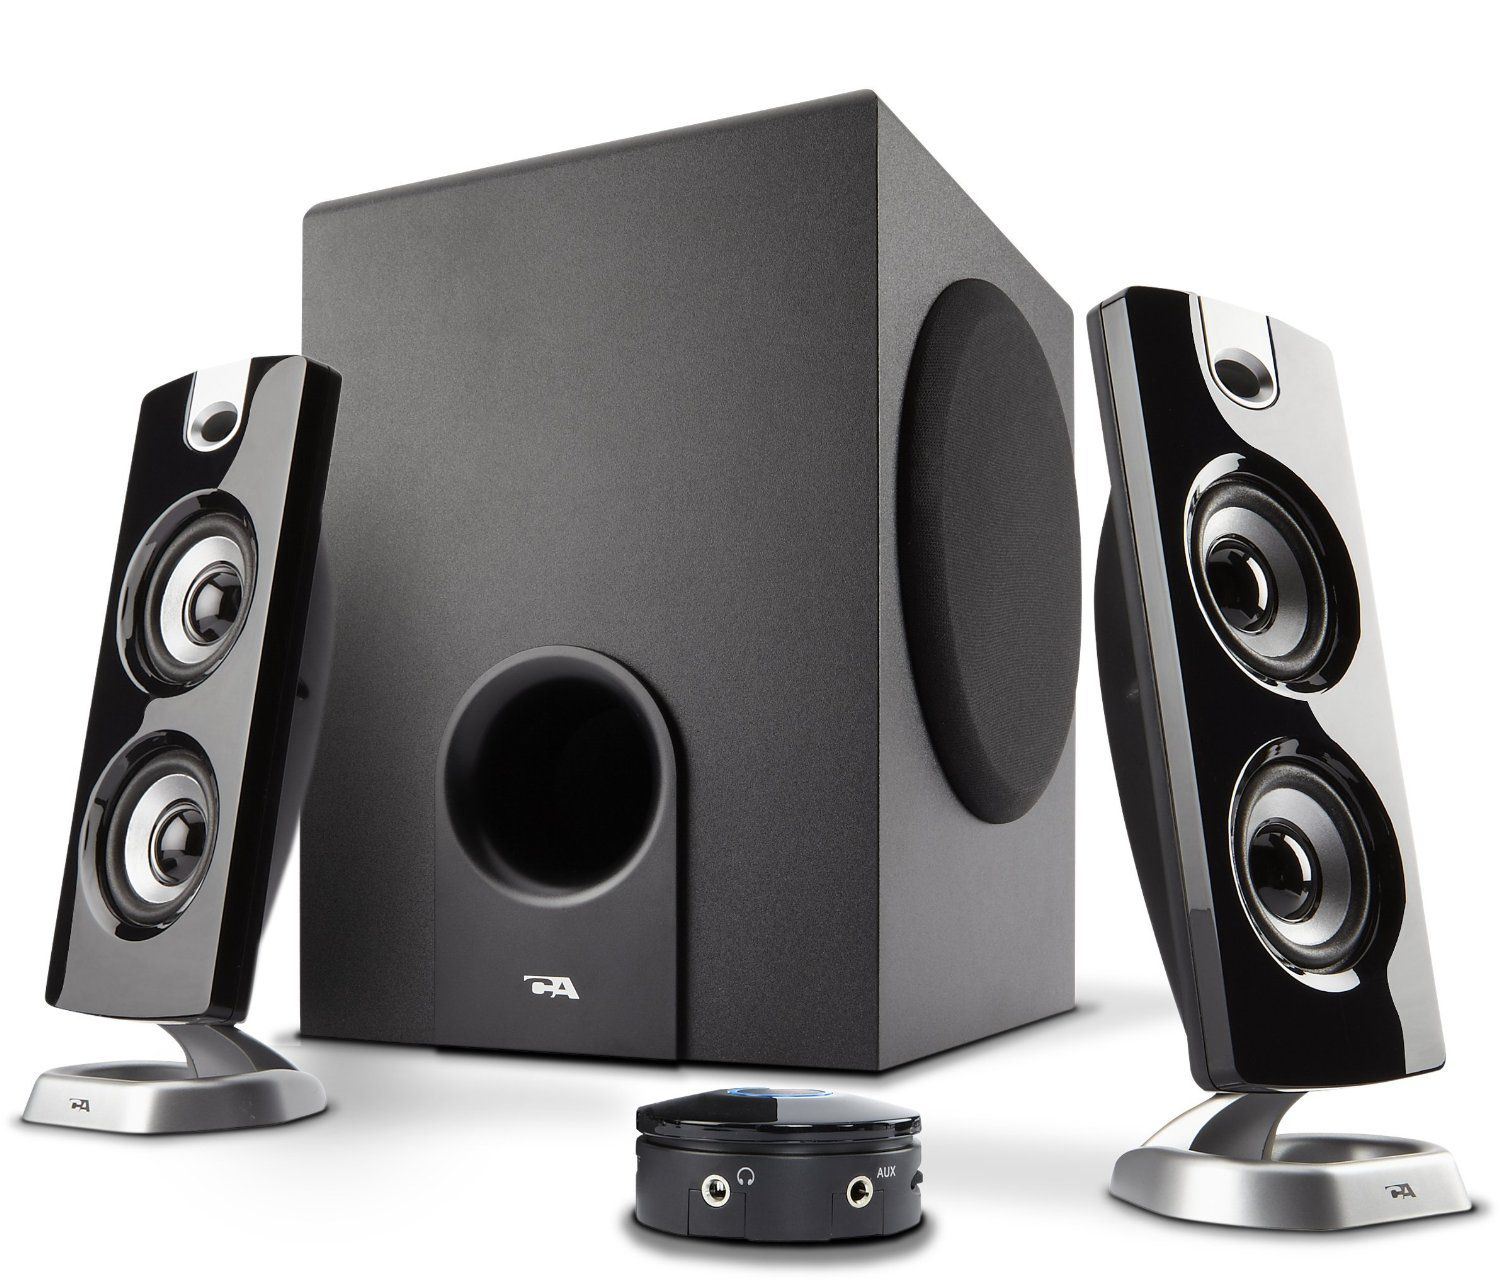 The 10 Best Computer Speakers To Buy In 2018 Subwoofers Will Consistent Power Both Maximizing Your